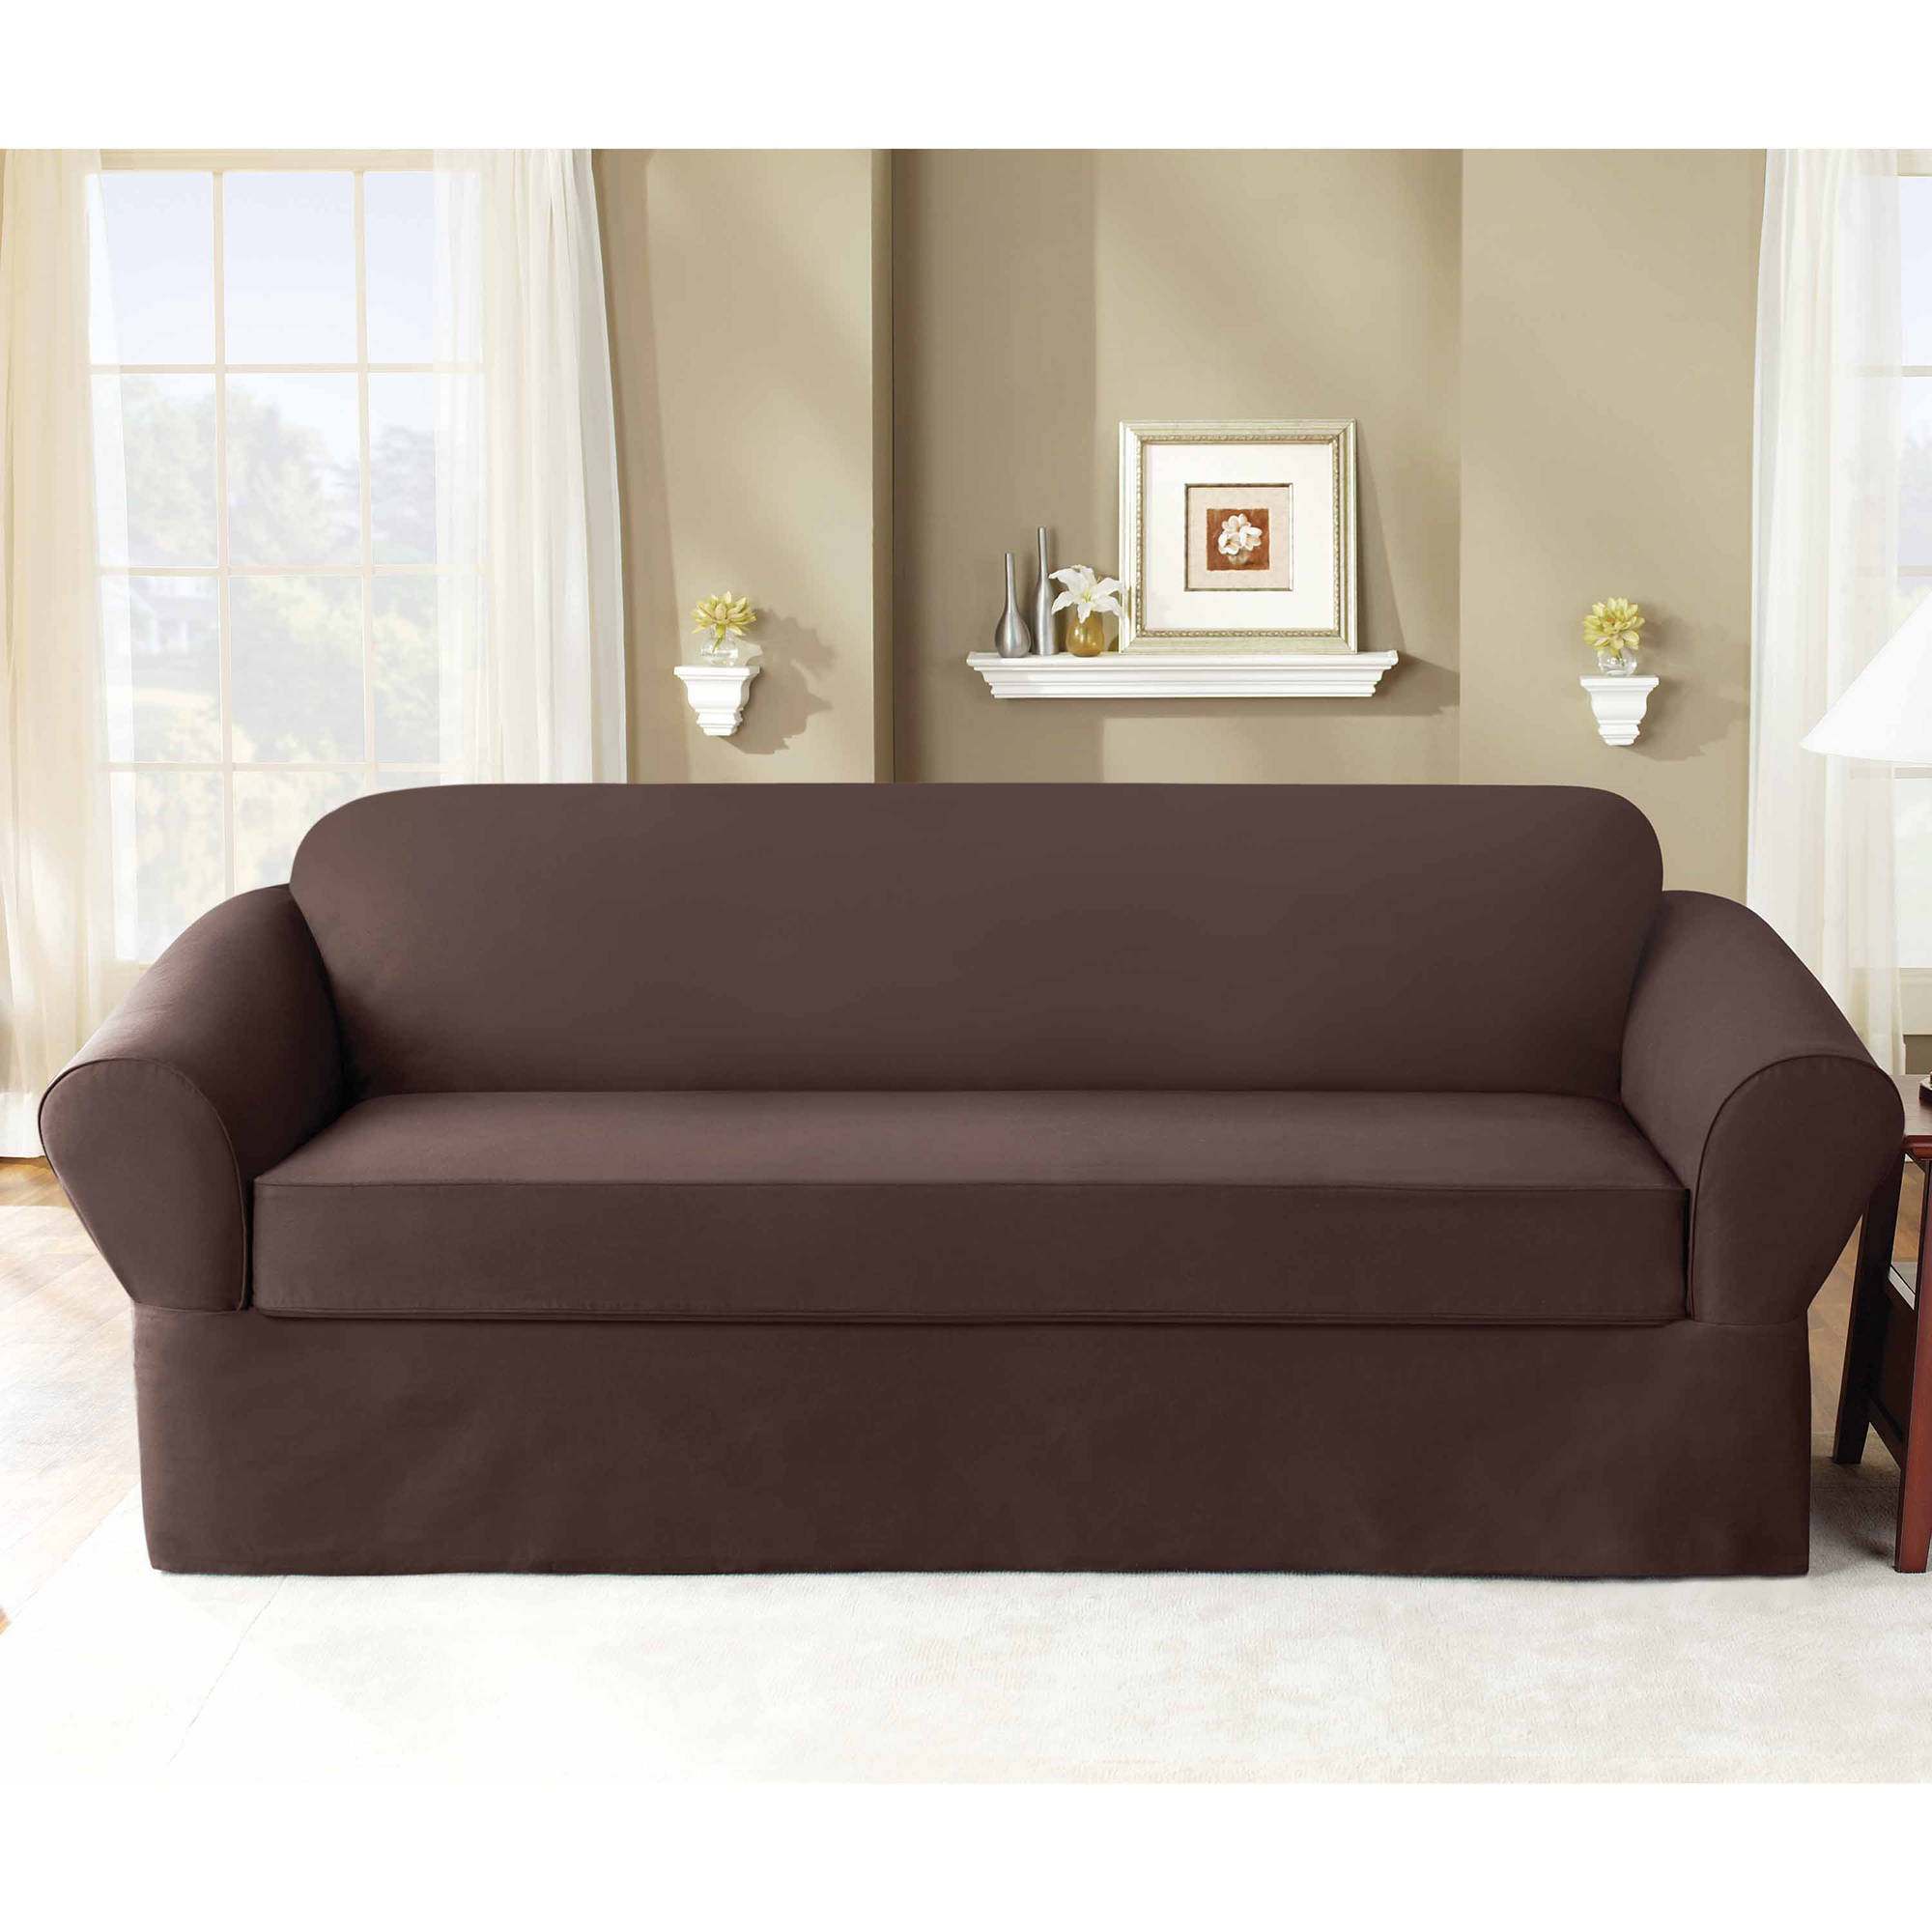 Sure Fit 6 oz Cottin Twill 2-Piece Separate Seat Sofa Slipcover by Sure Fit